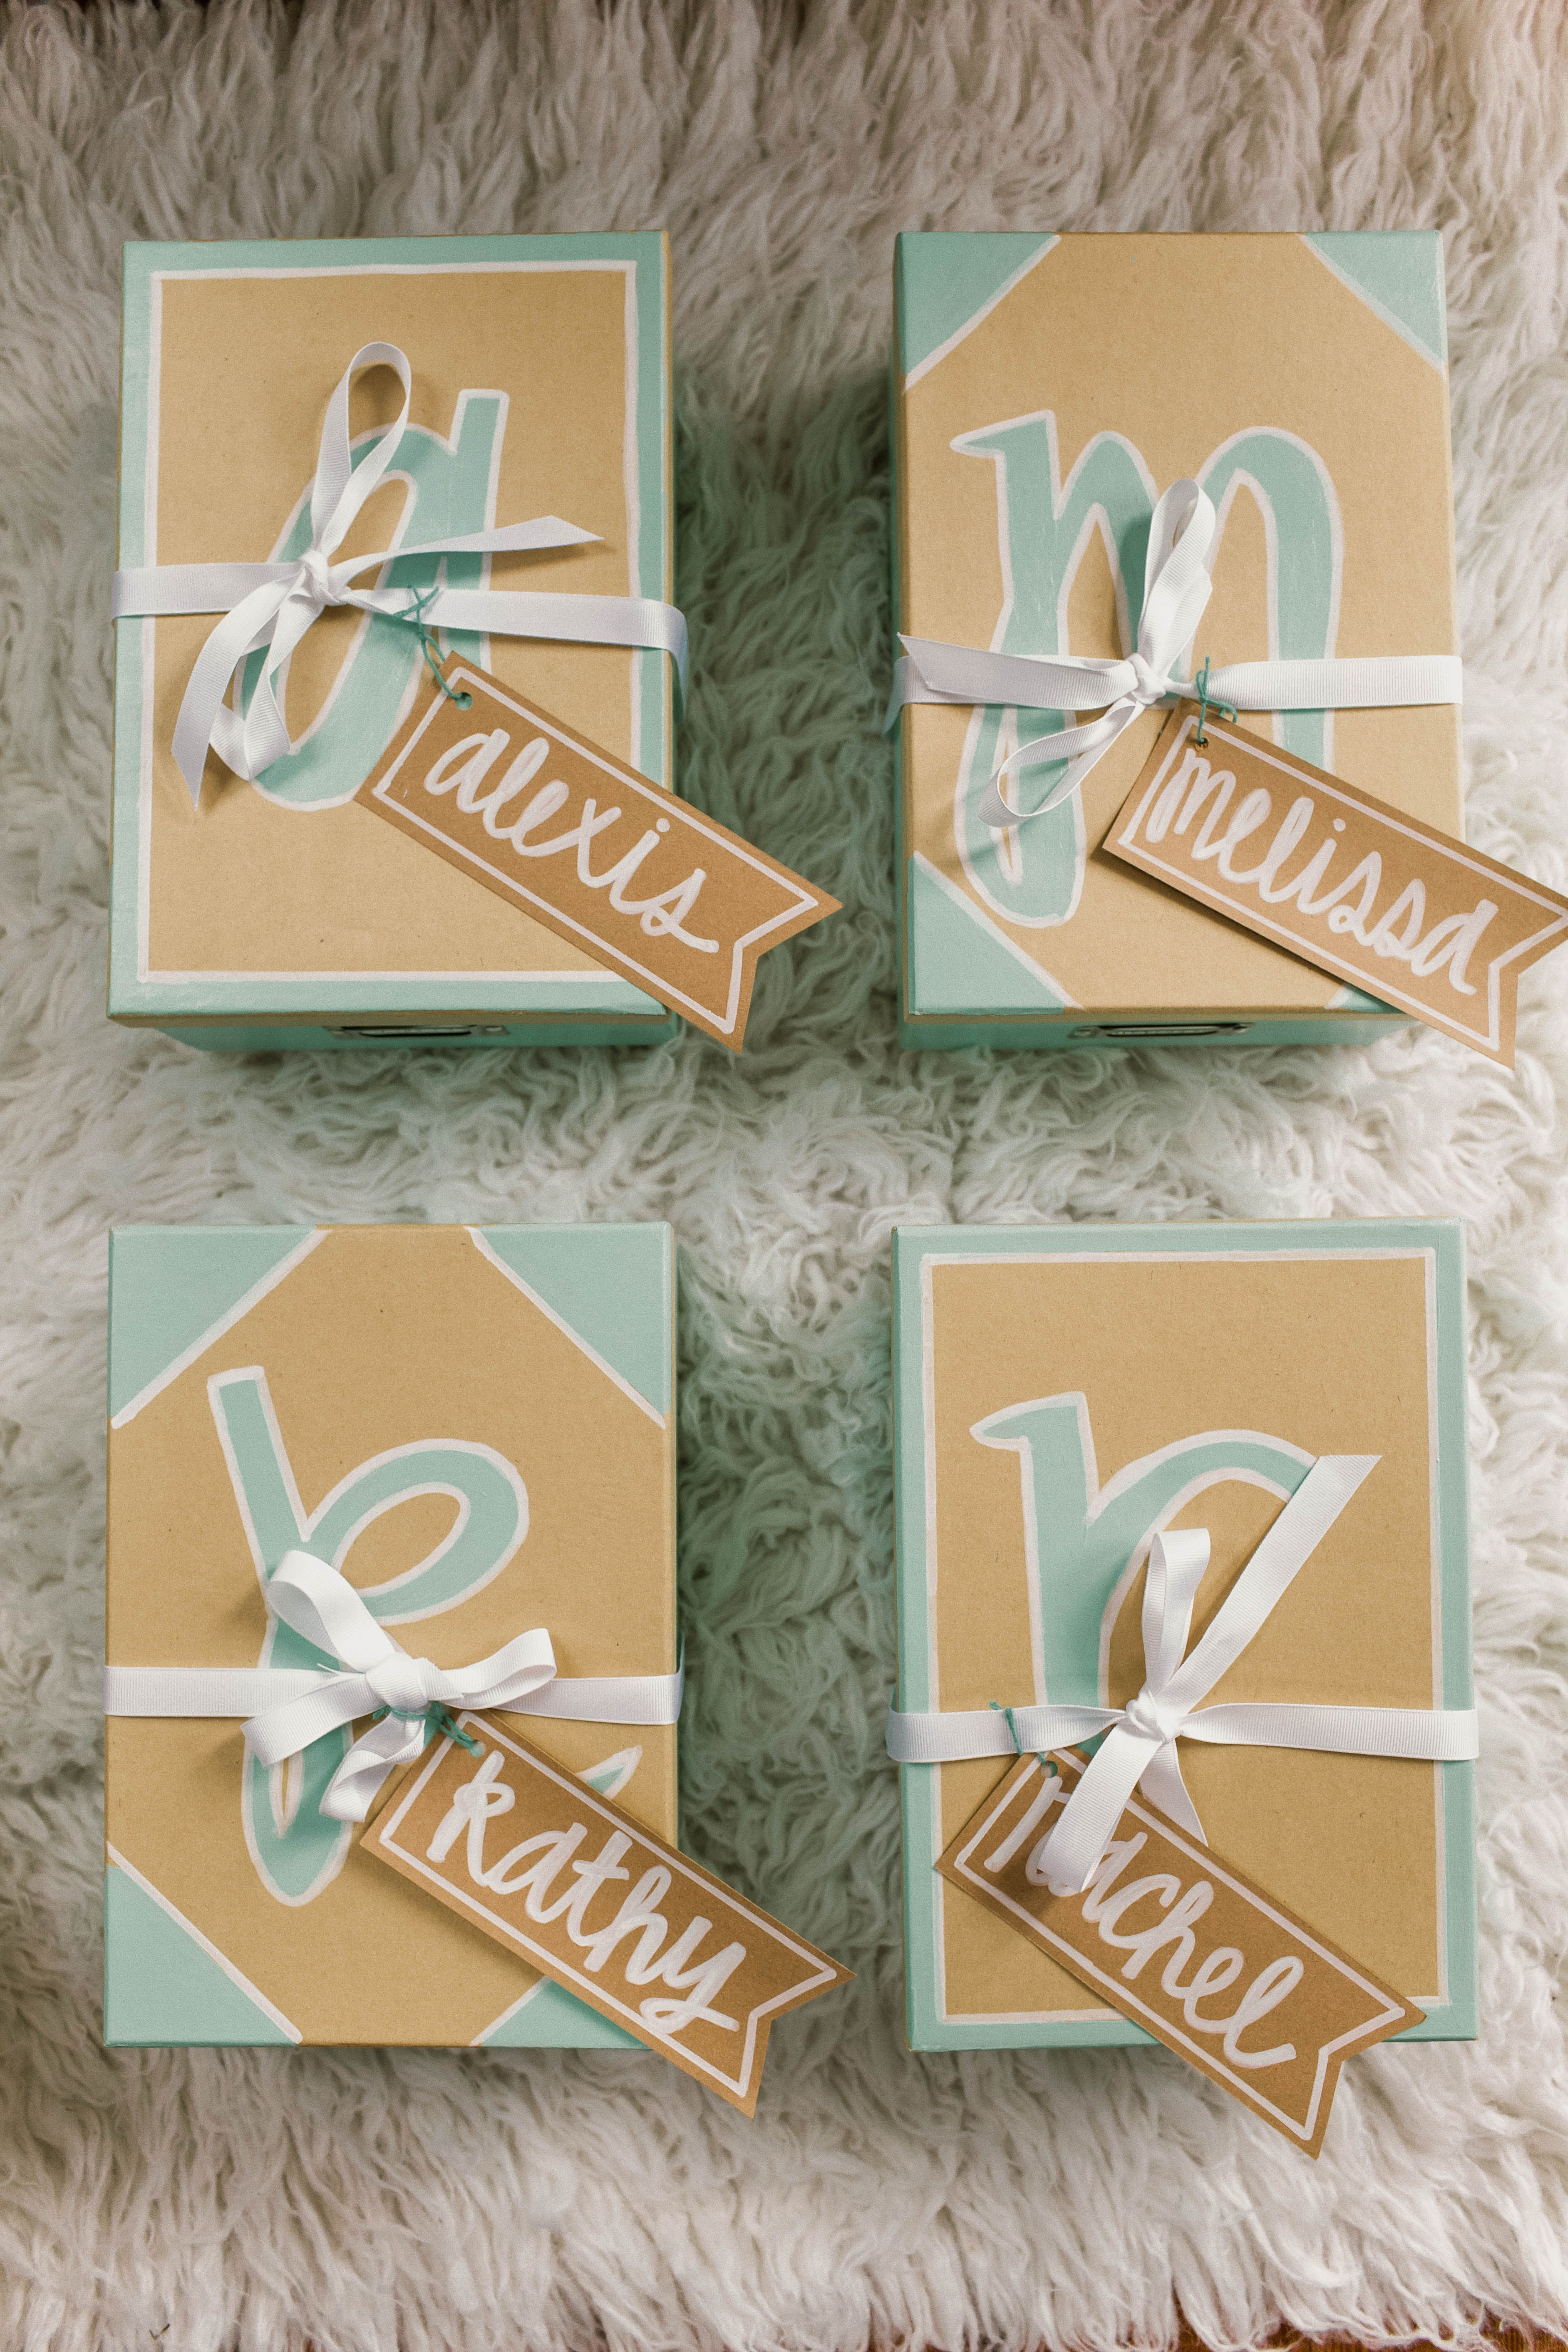 Inspiration for bridesmaid gifts and gift boxes teale and khaki